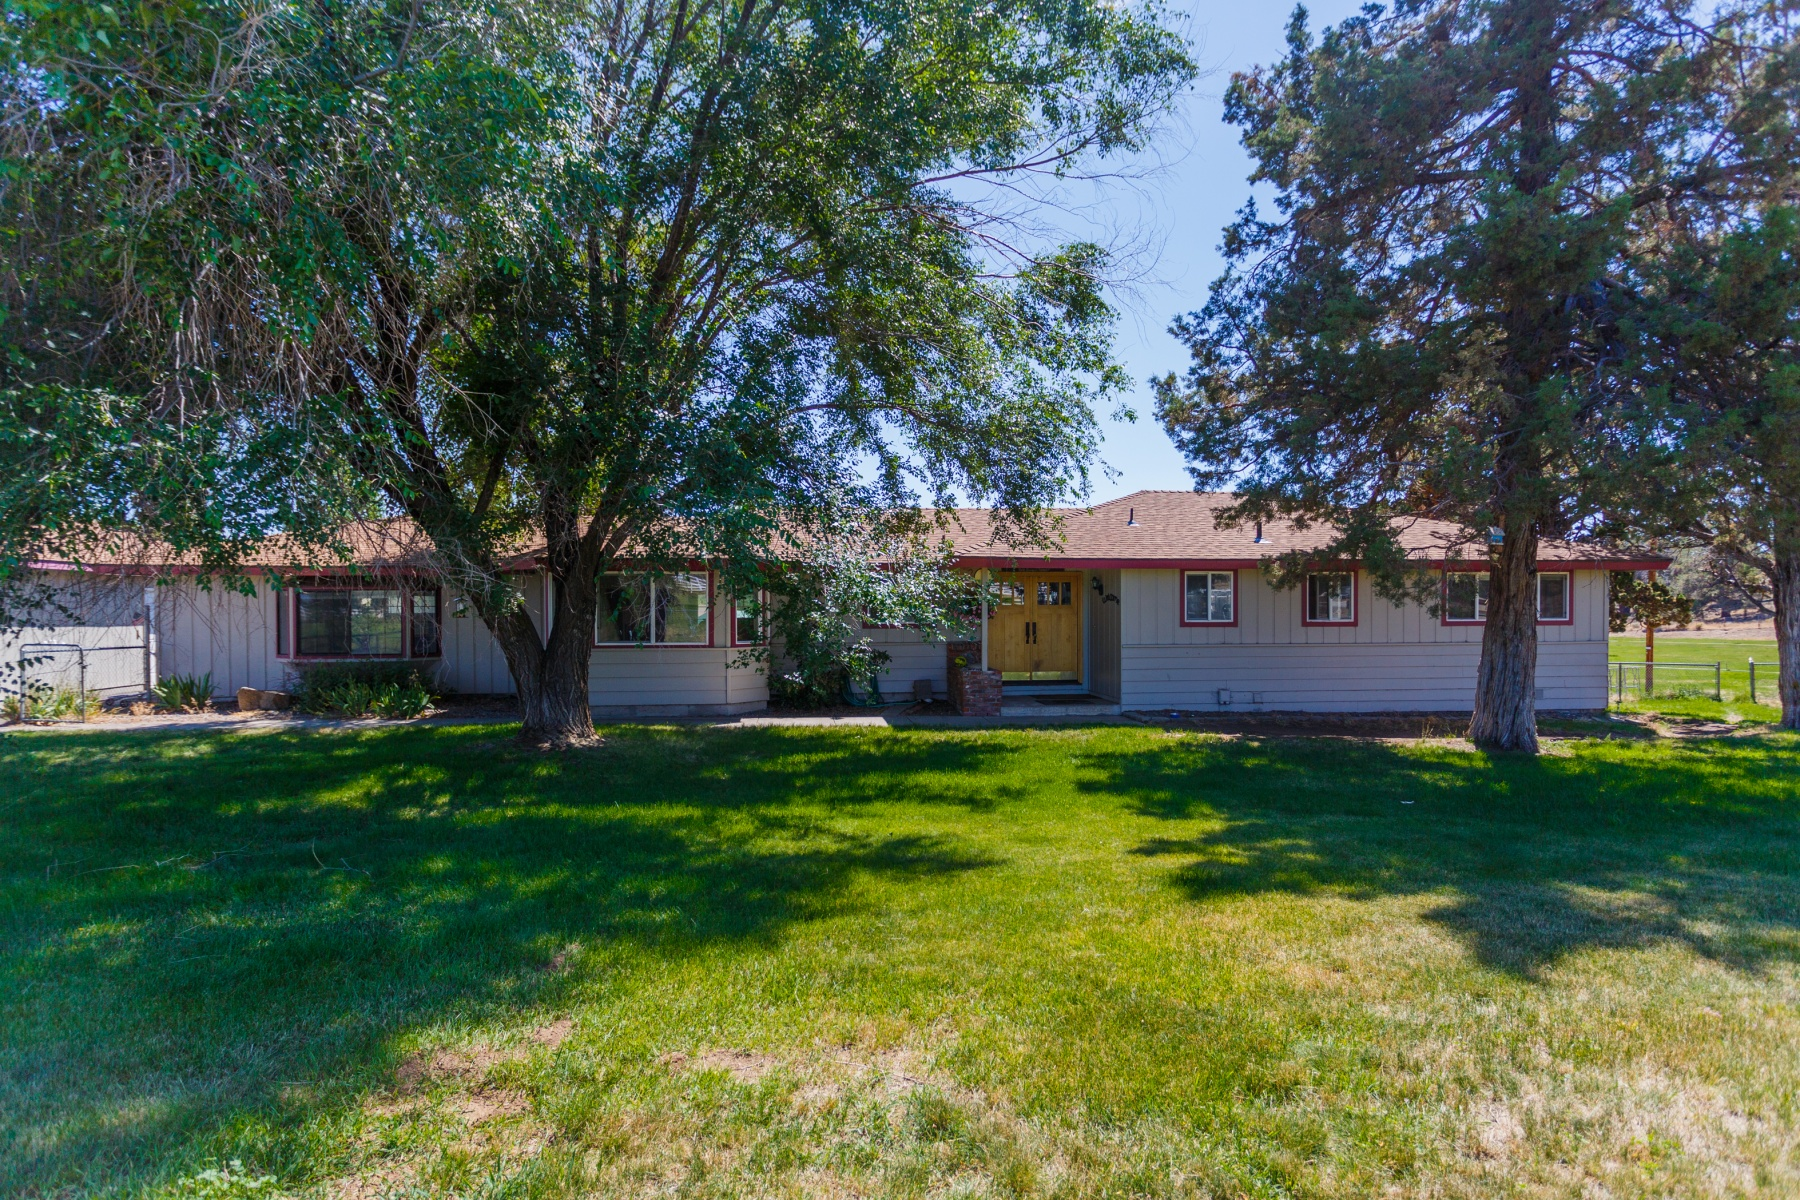 Single Family Home for Sale at 62365 Deer Trail, BEND 62365 Deer Trail Rd Bend, Oregon 97701 United States